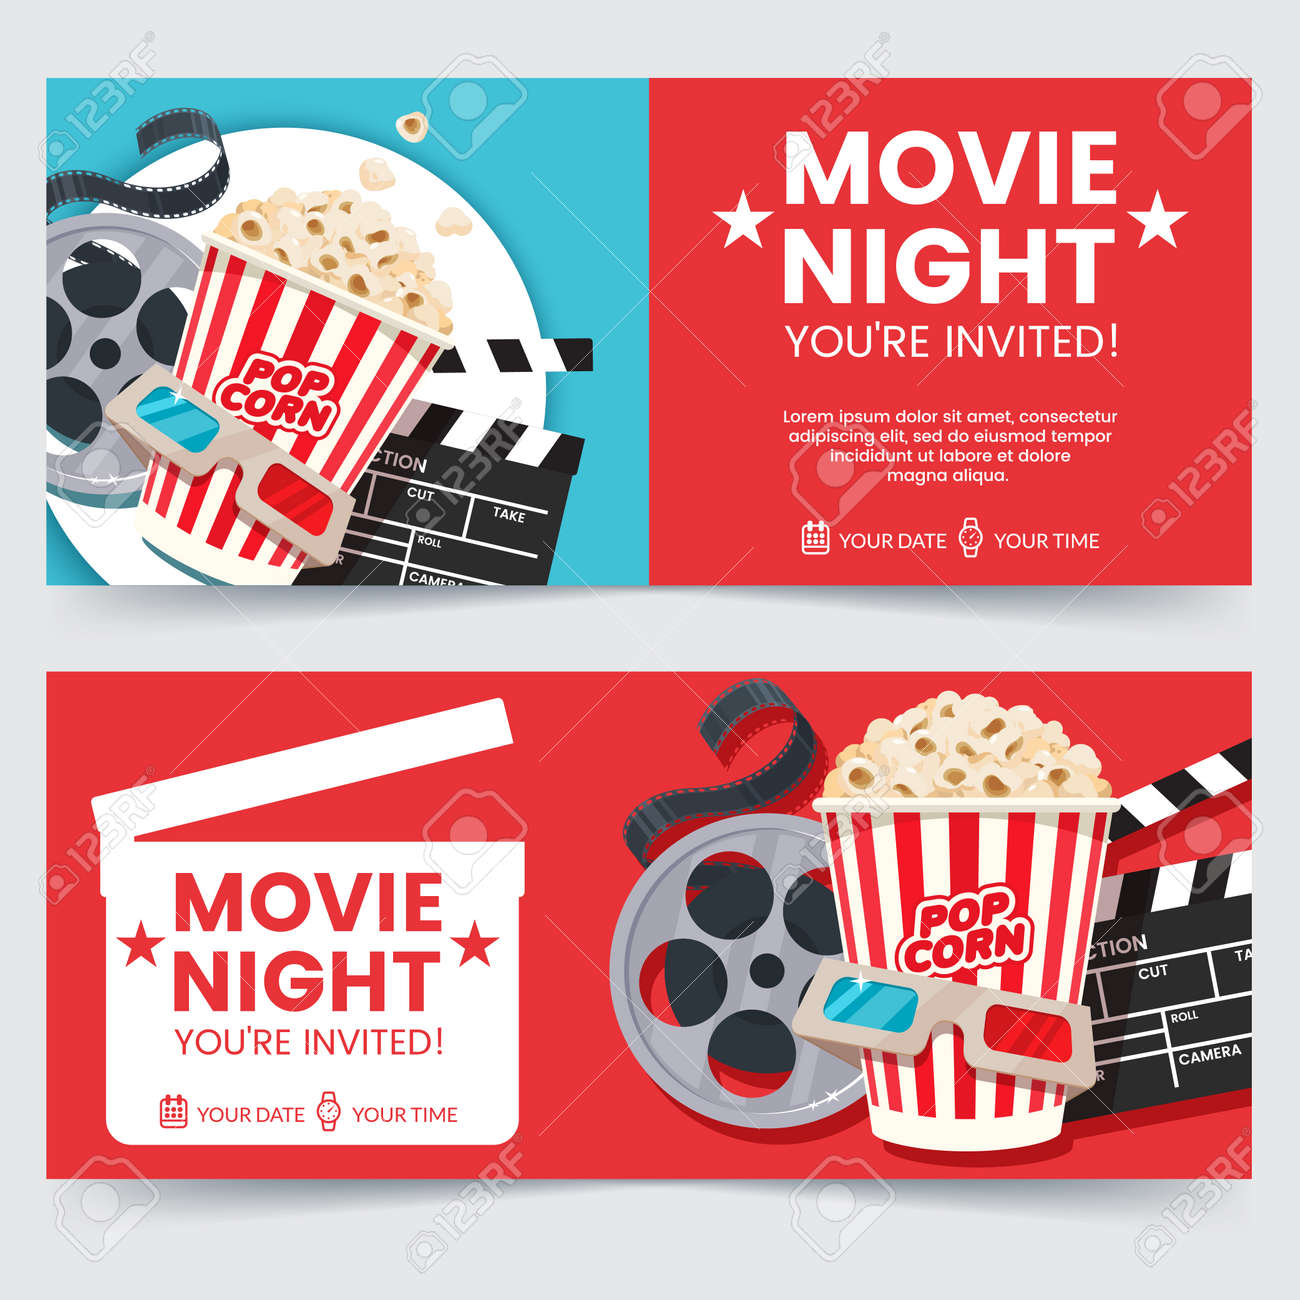 Cinema tickets design concept. Movie Night invitation. Cinema poster template. Composition with popcorn, clapperboard, 3d glasses and filmstrip. Banner design for movie theater. - 95503077